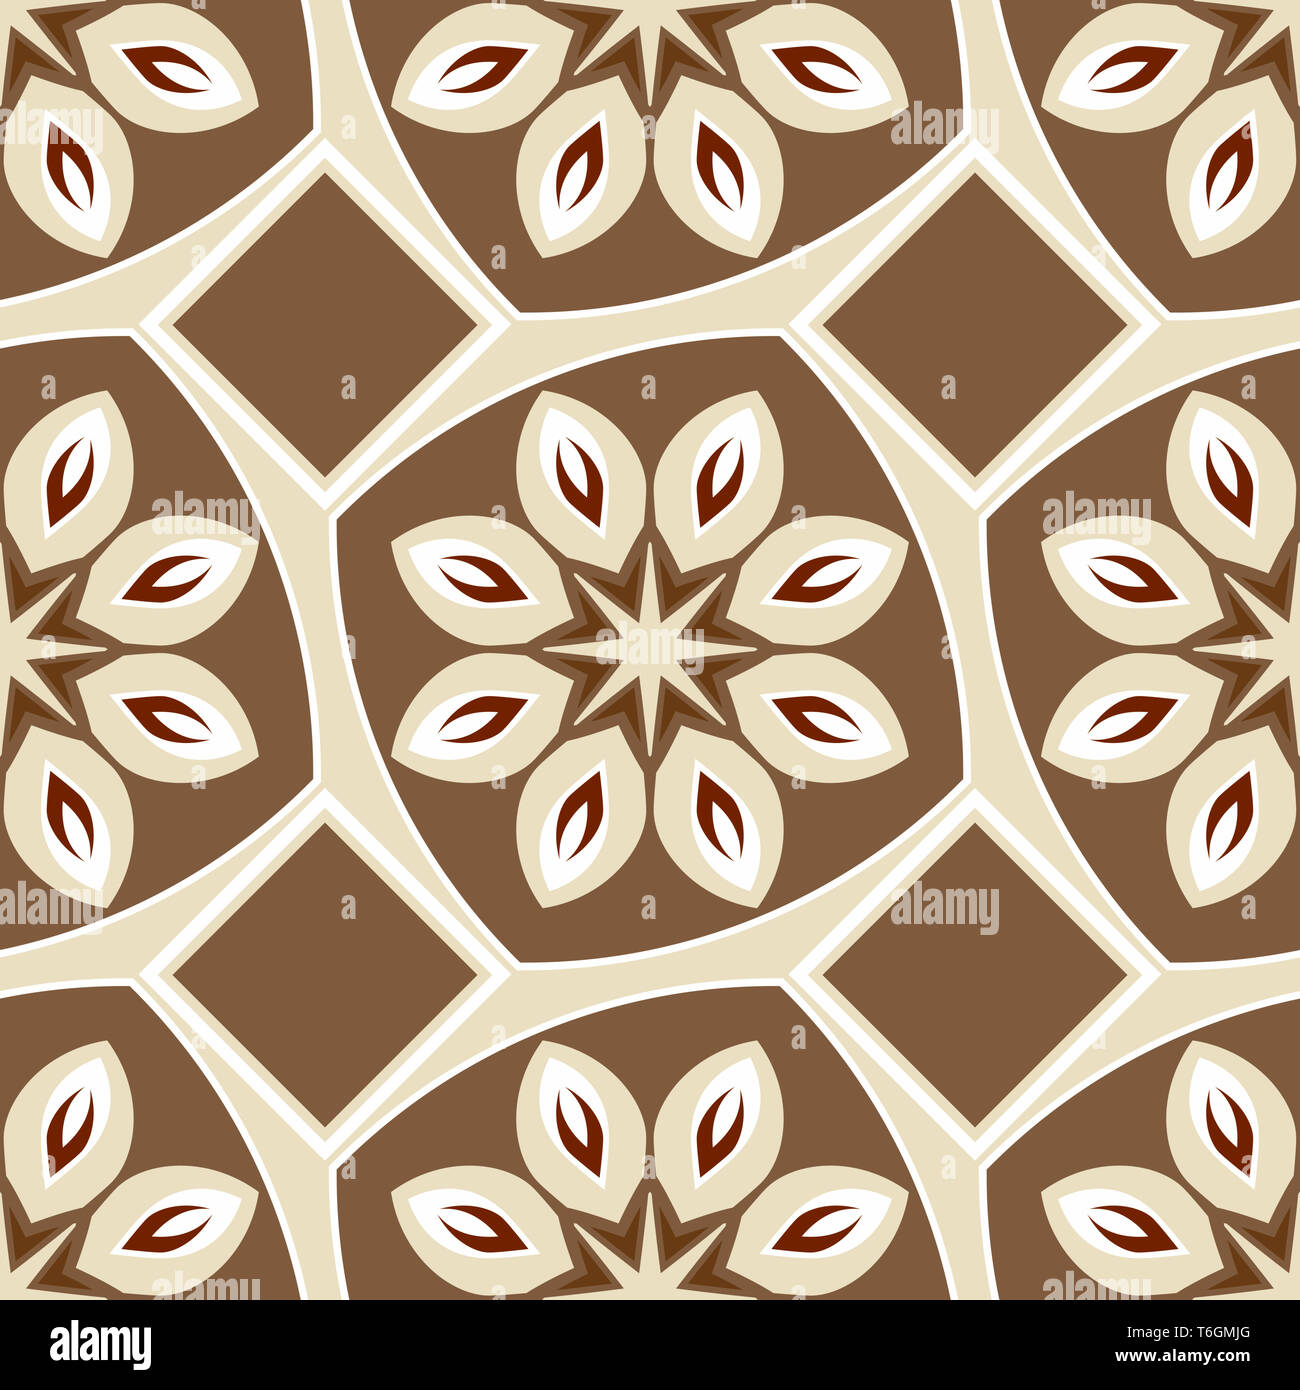 seamless pattern - Stock Image